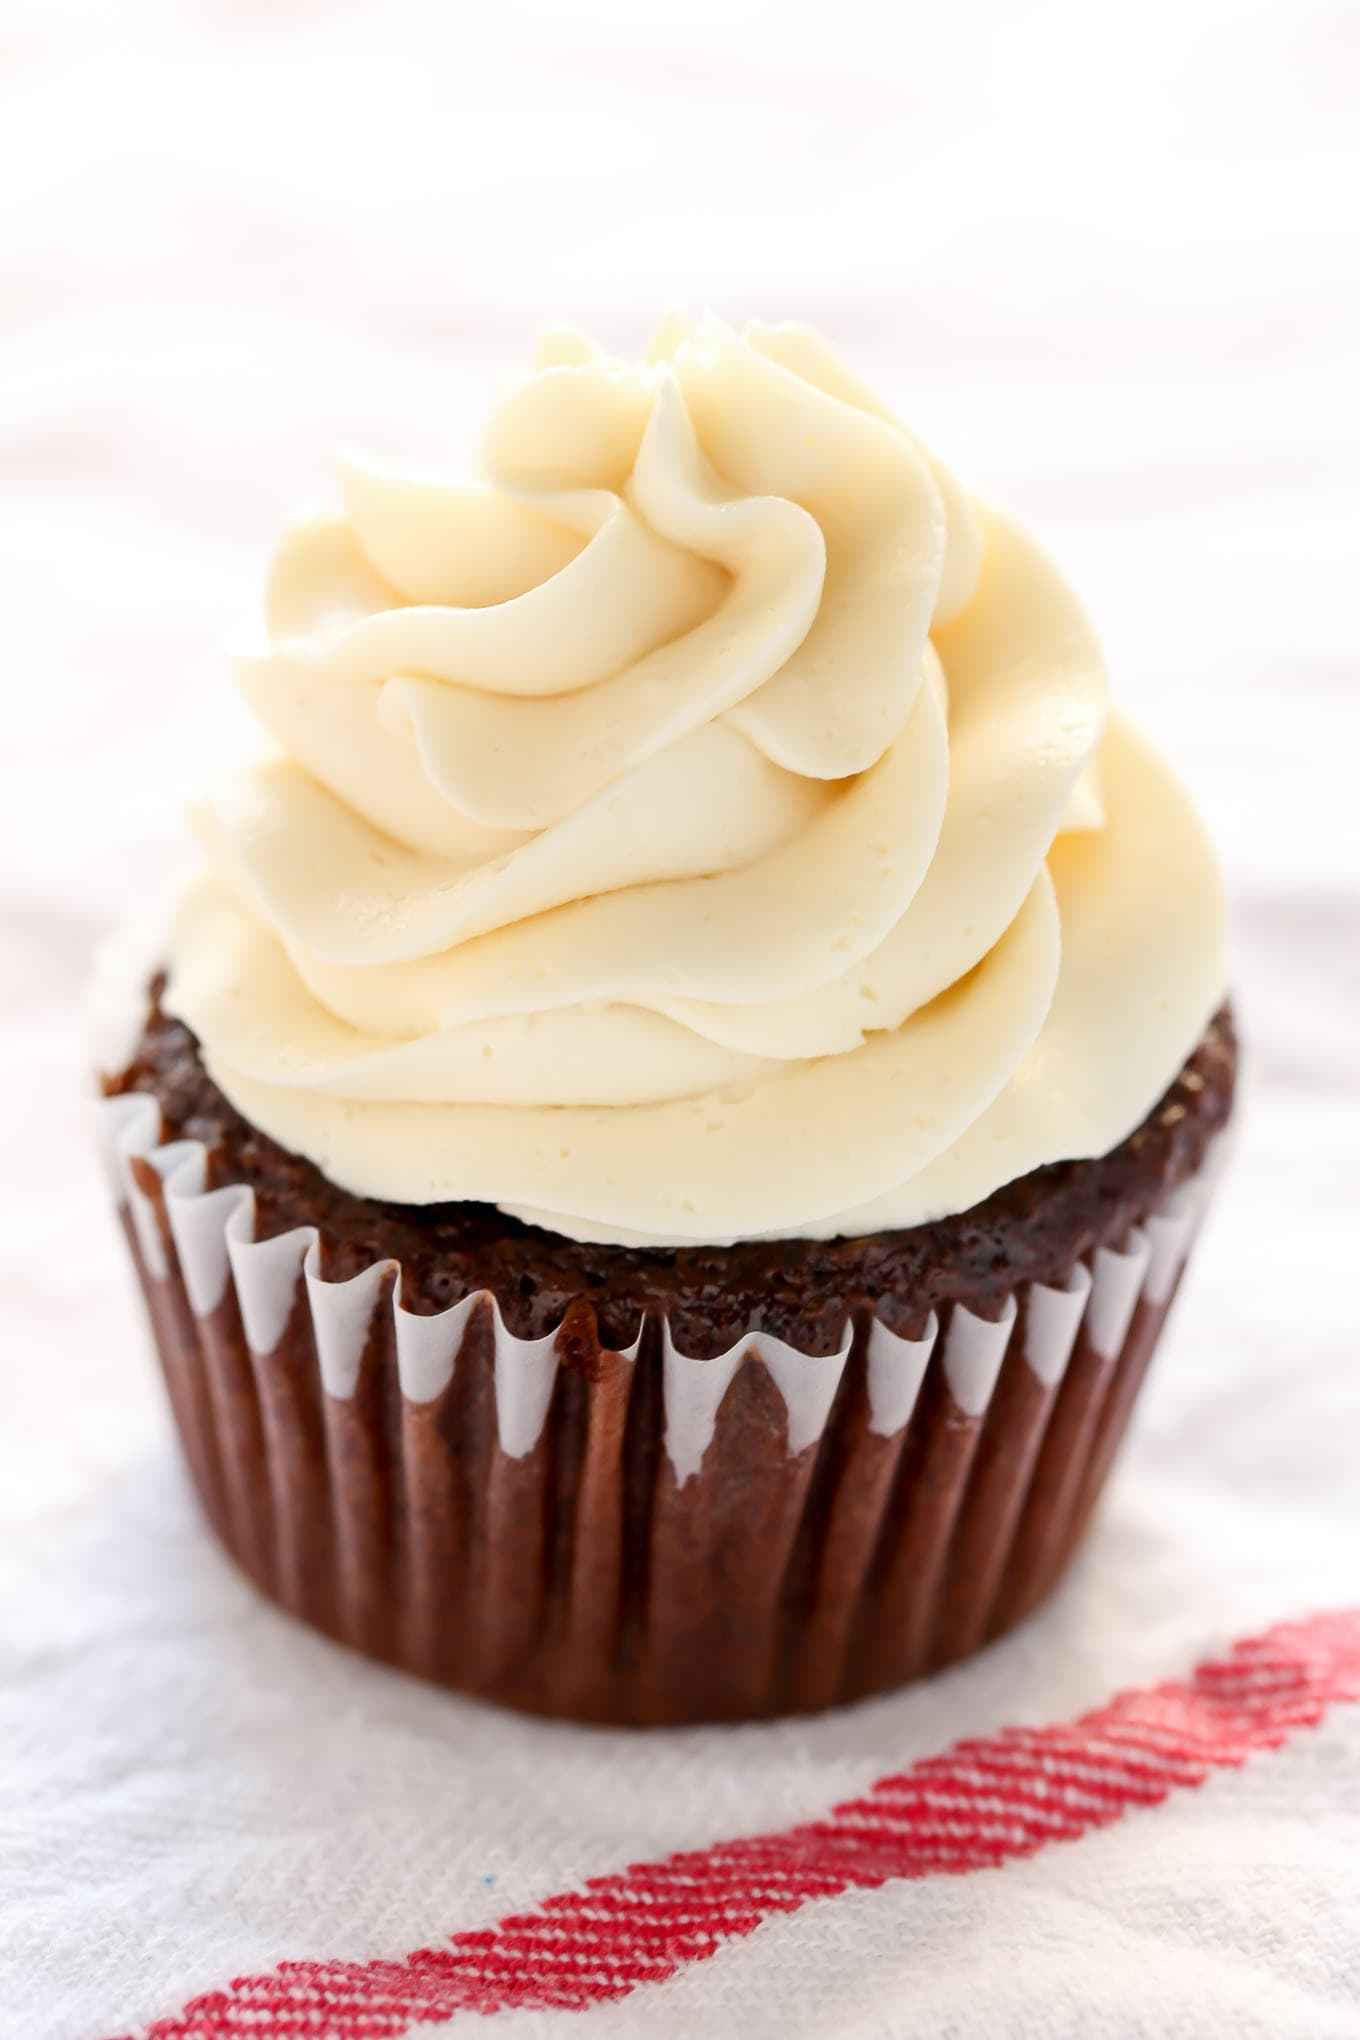 How To Make Icings For Cupcakes  How To Make Buttercream Frosting